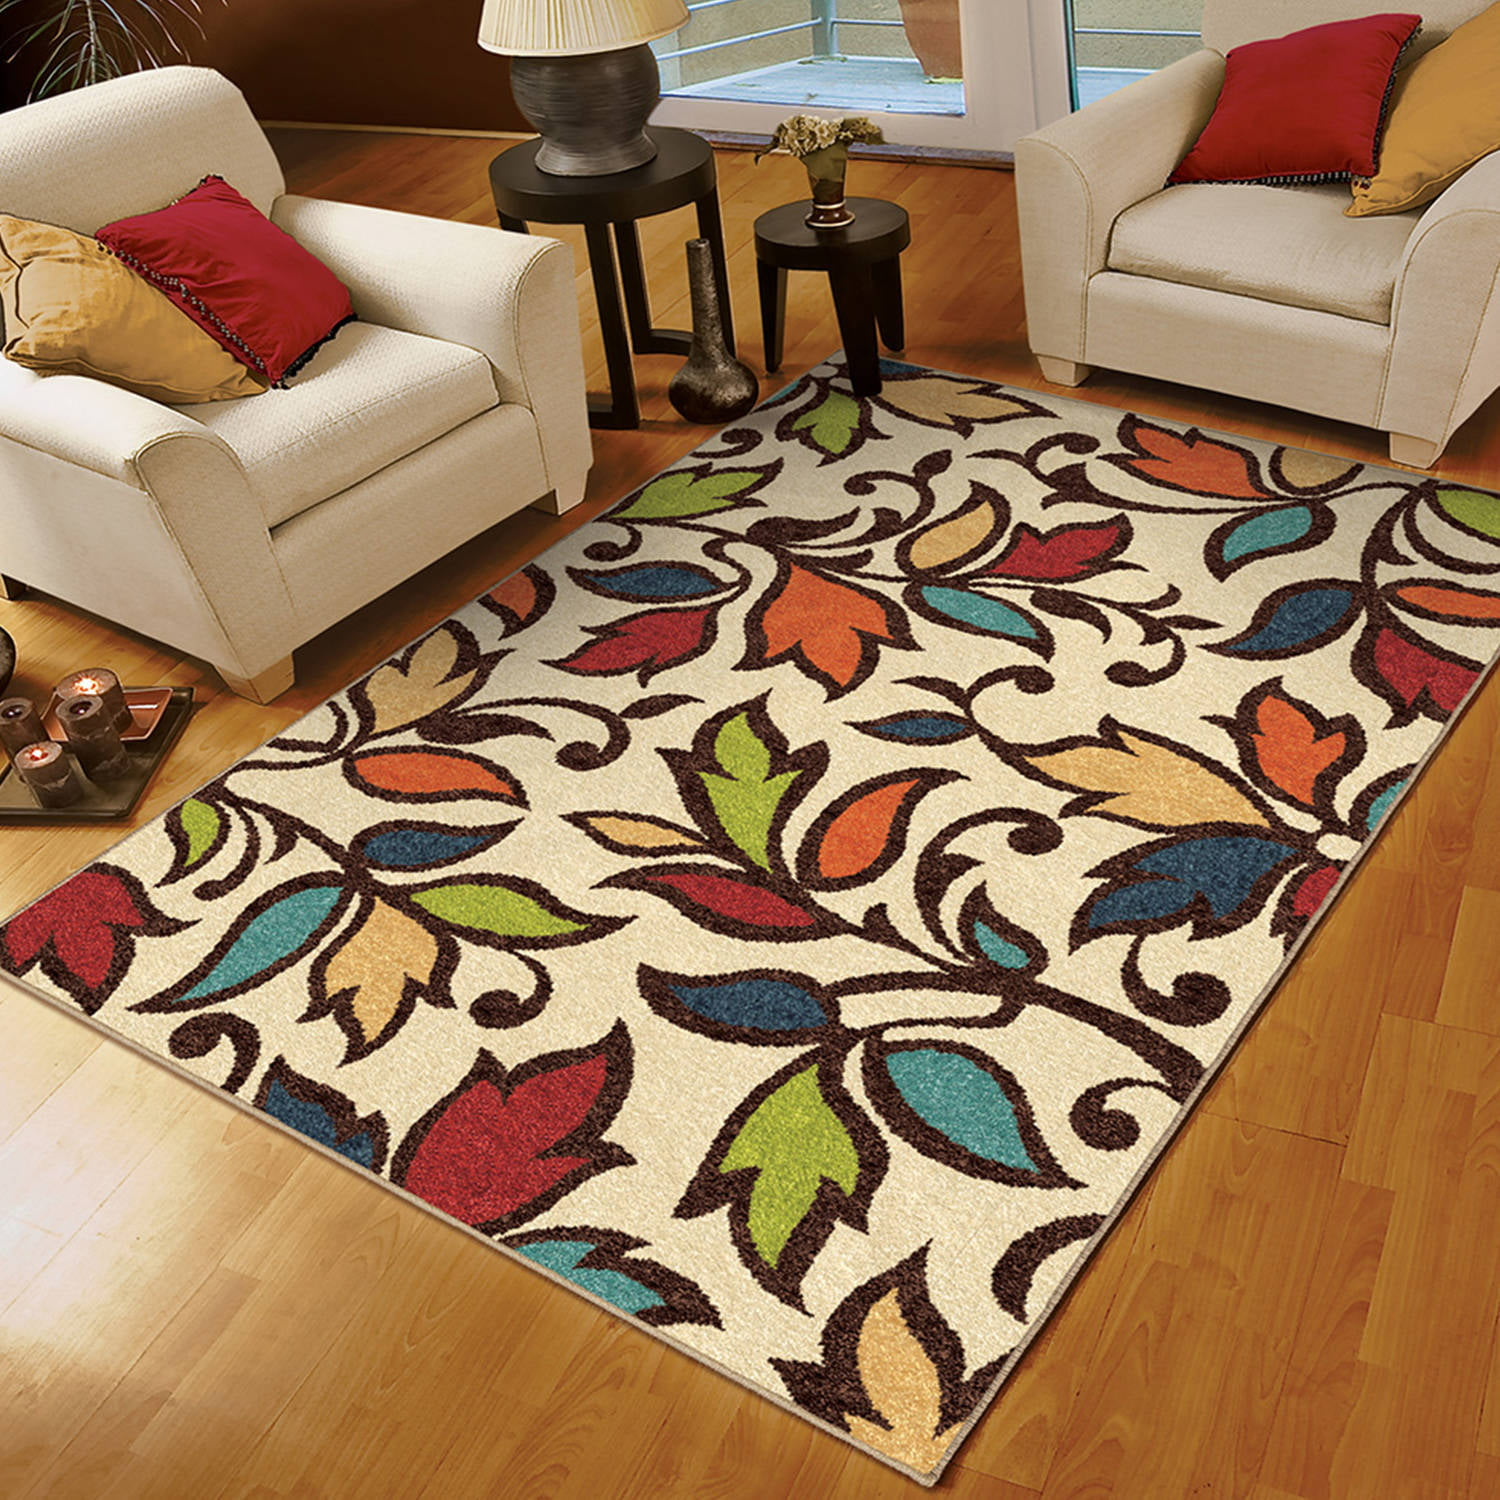 Orian Rugs Indoor/Outdoor Dicarna Cream Leaves Area Rug - Walmart.com